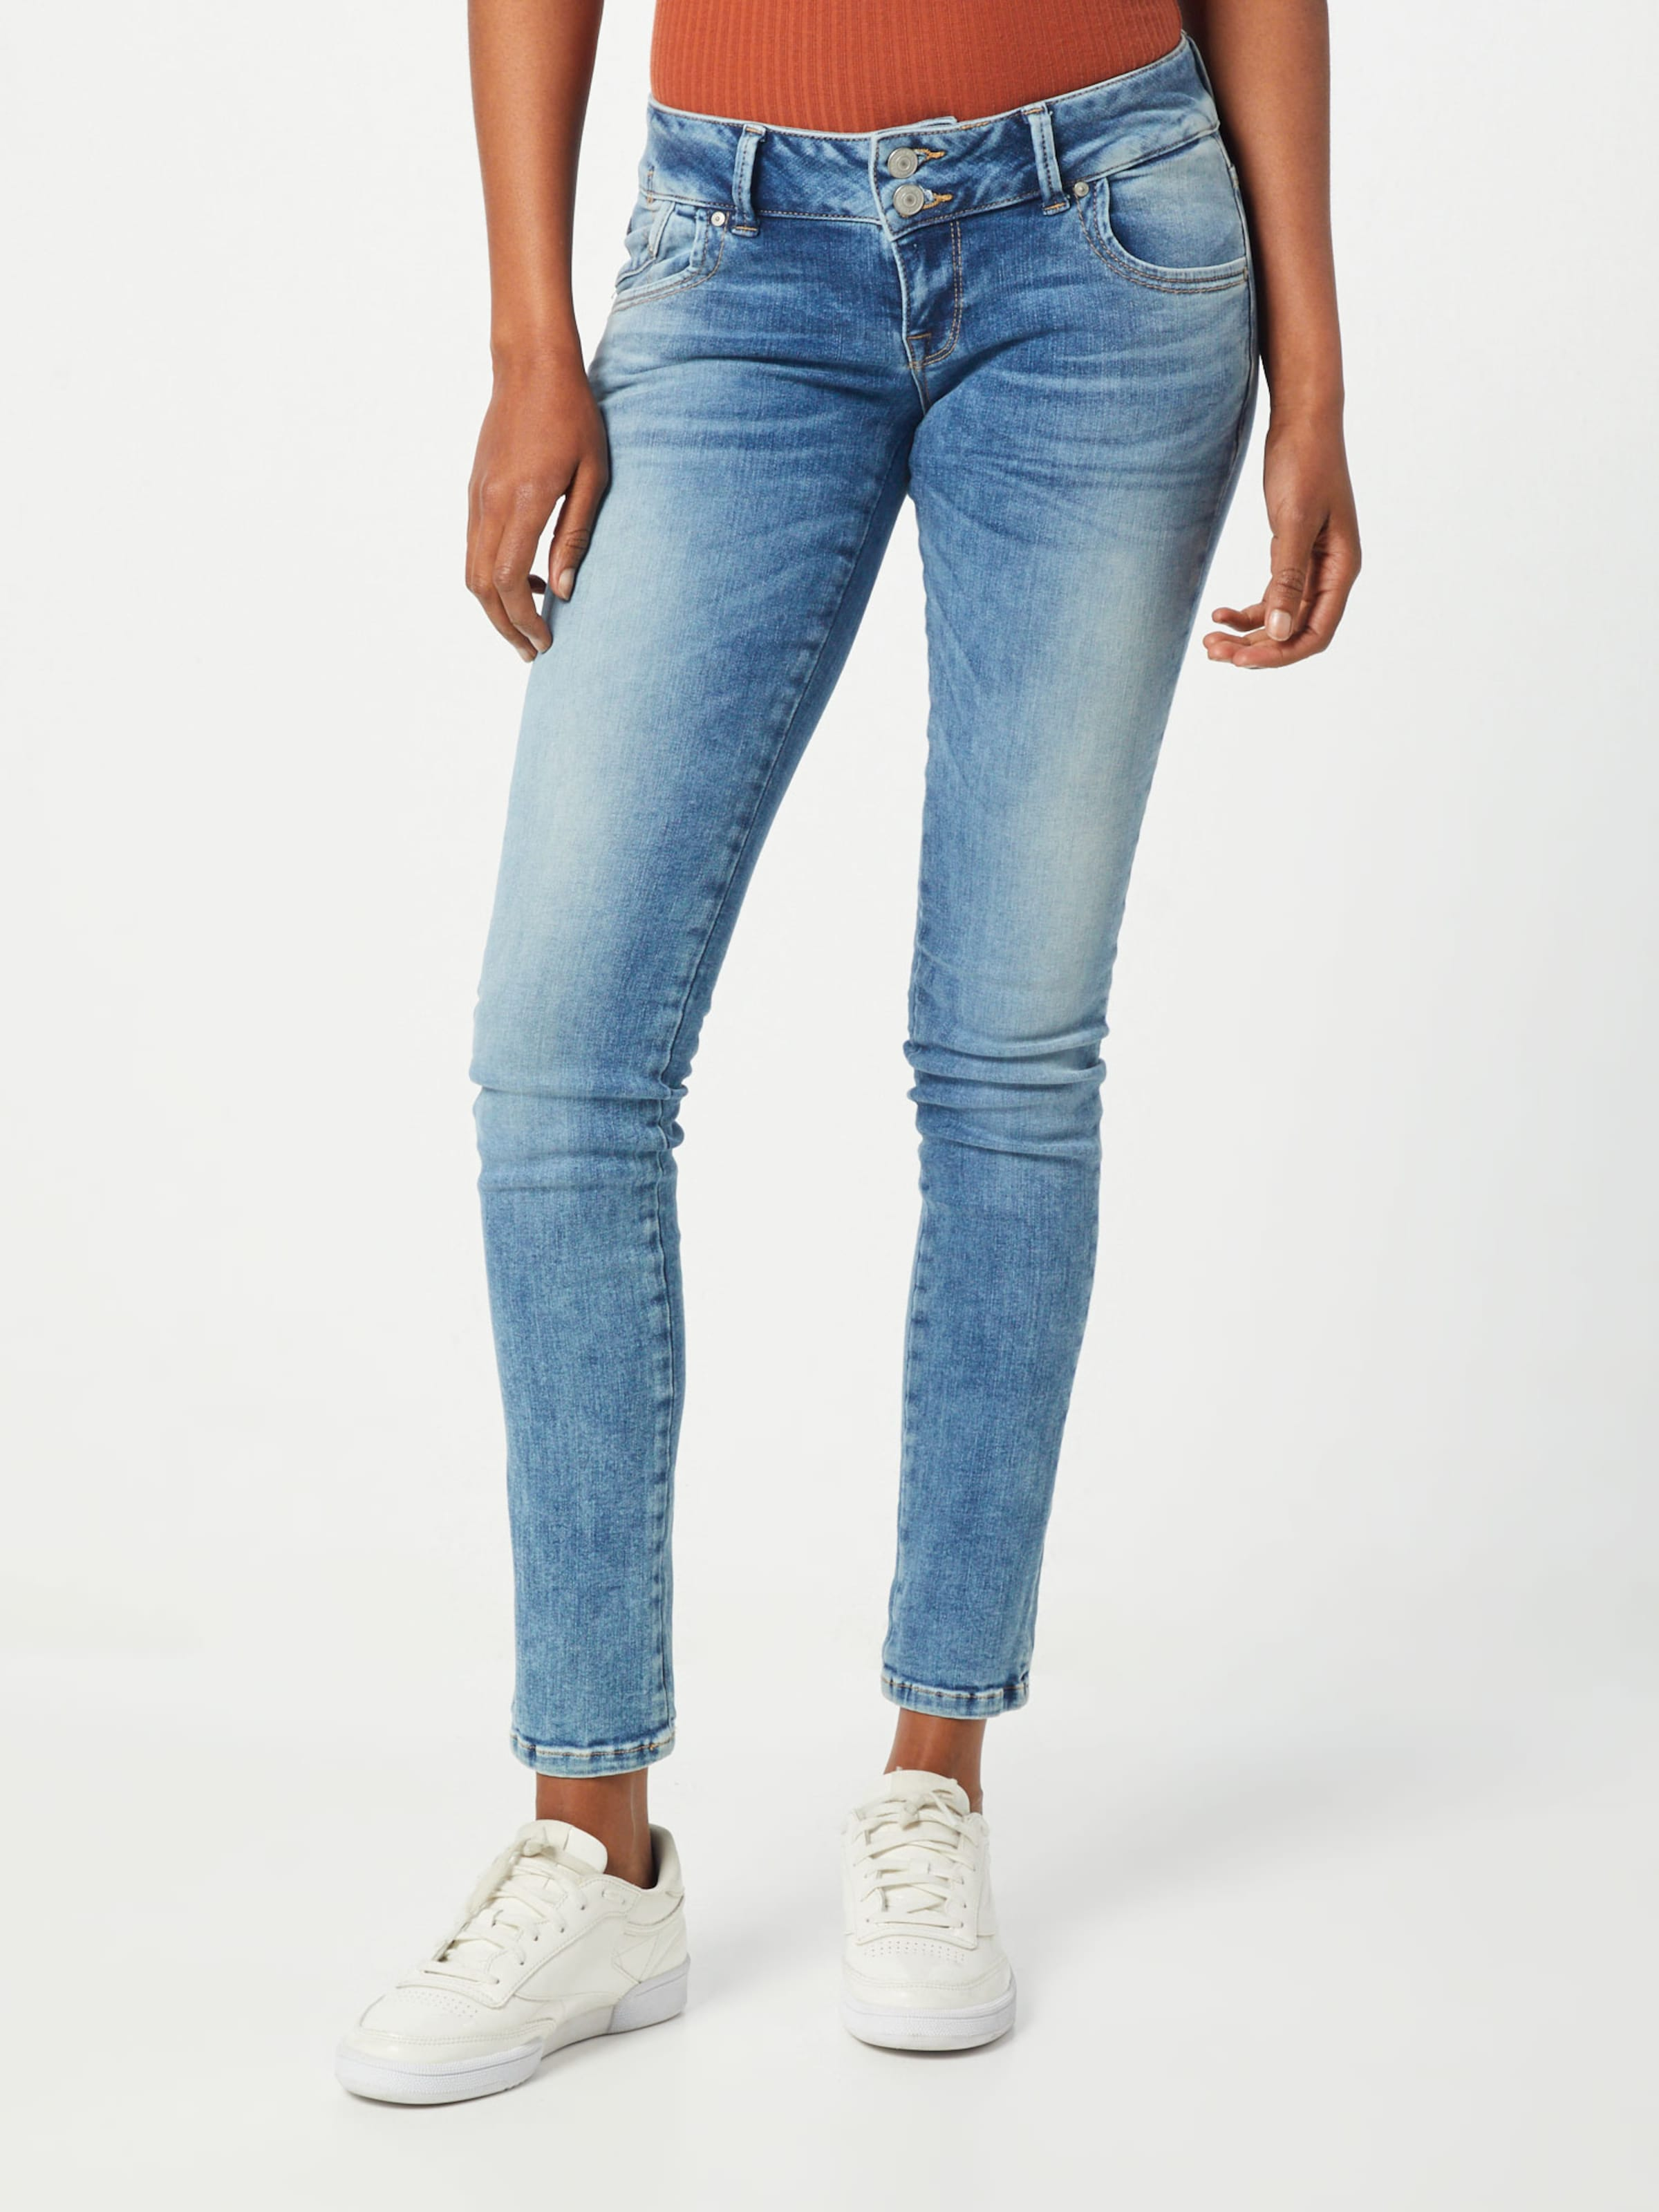 Jeans Denim Ltb In 'molly' Blue rCBedoxW